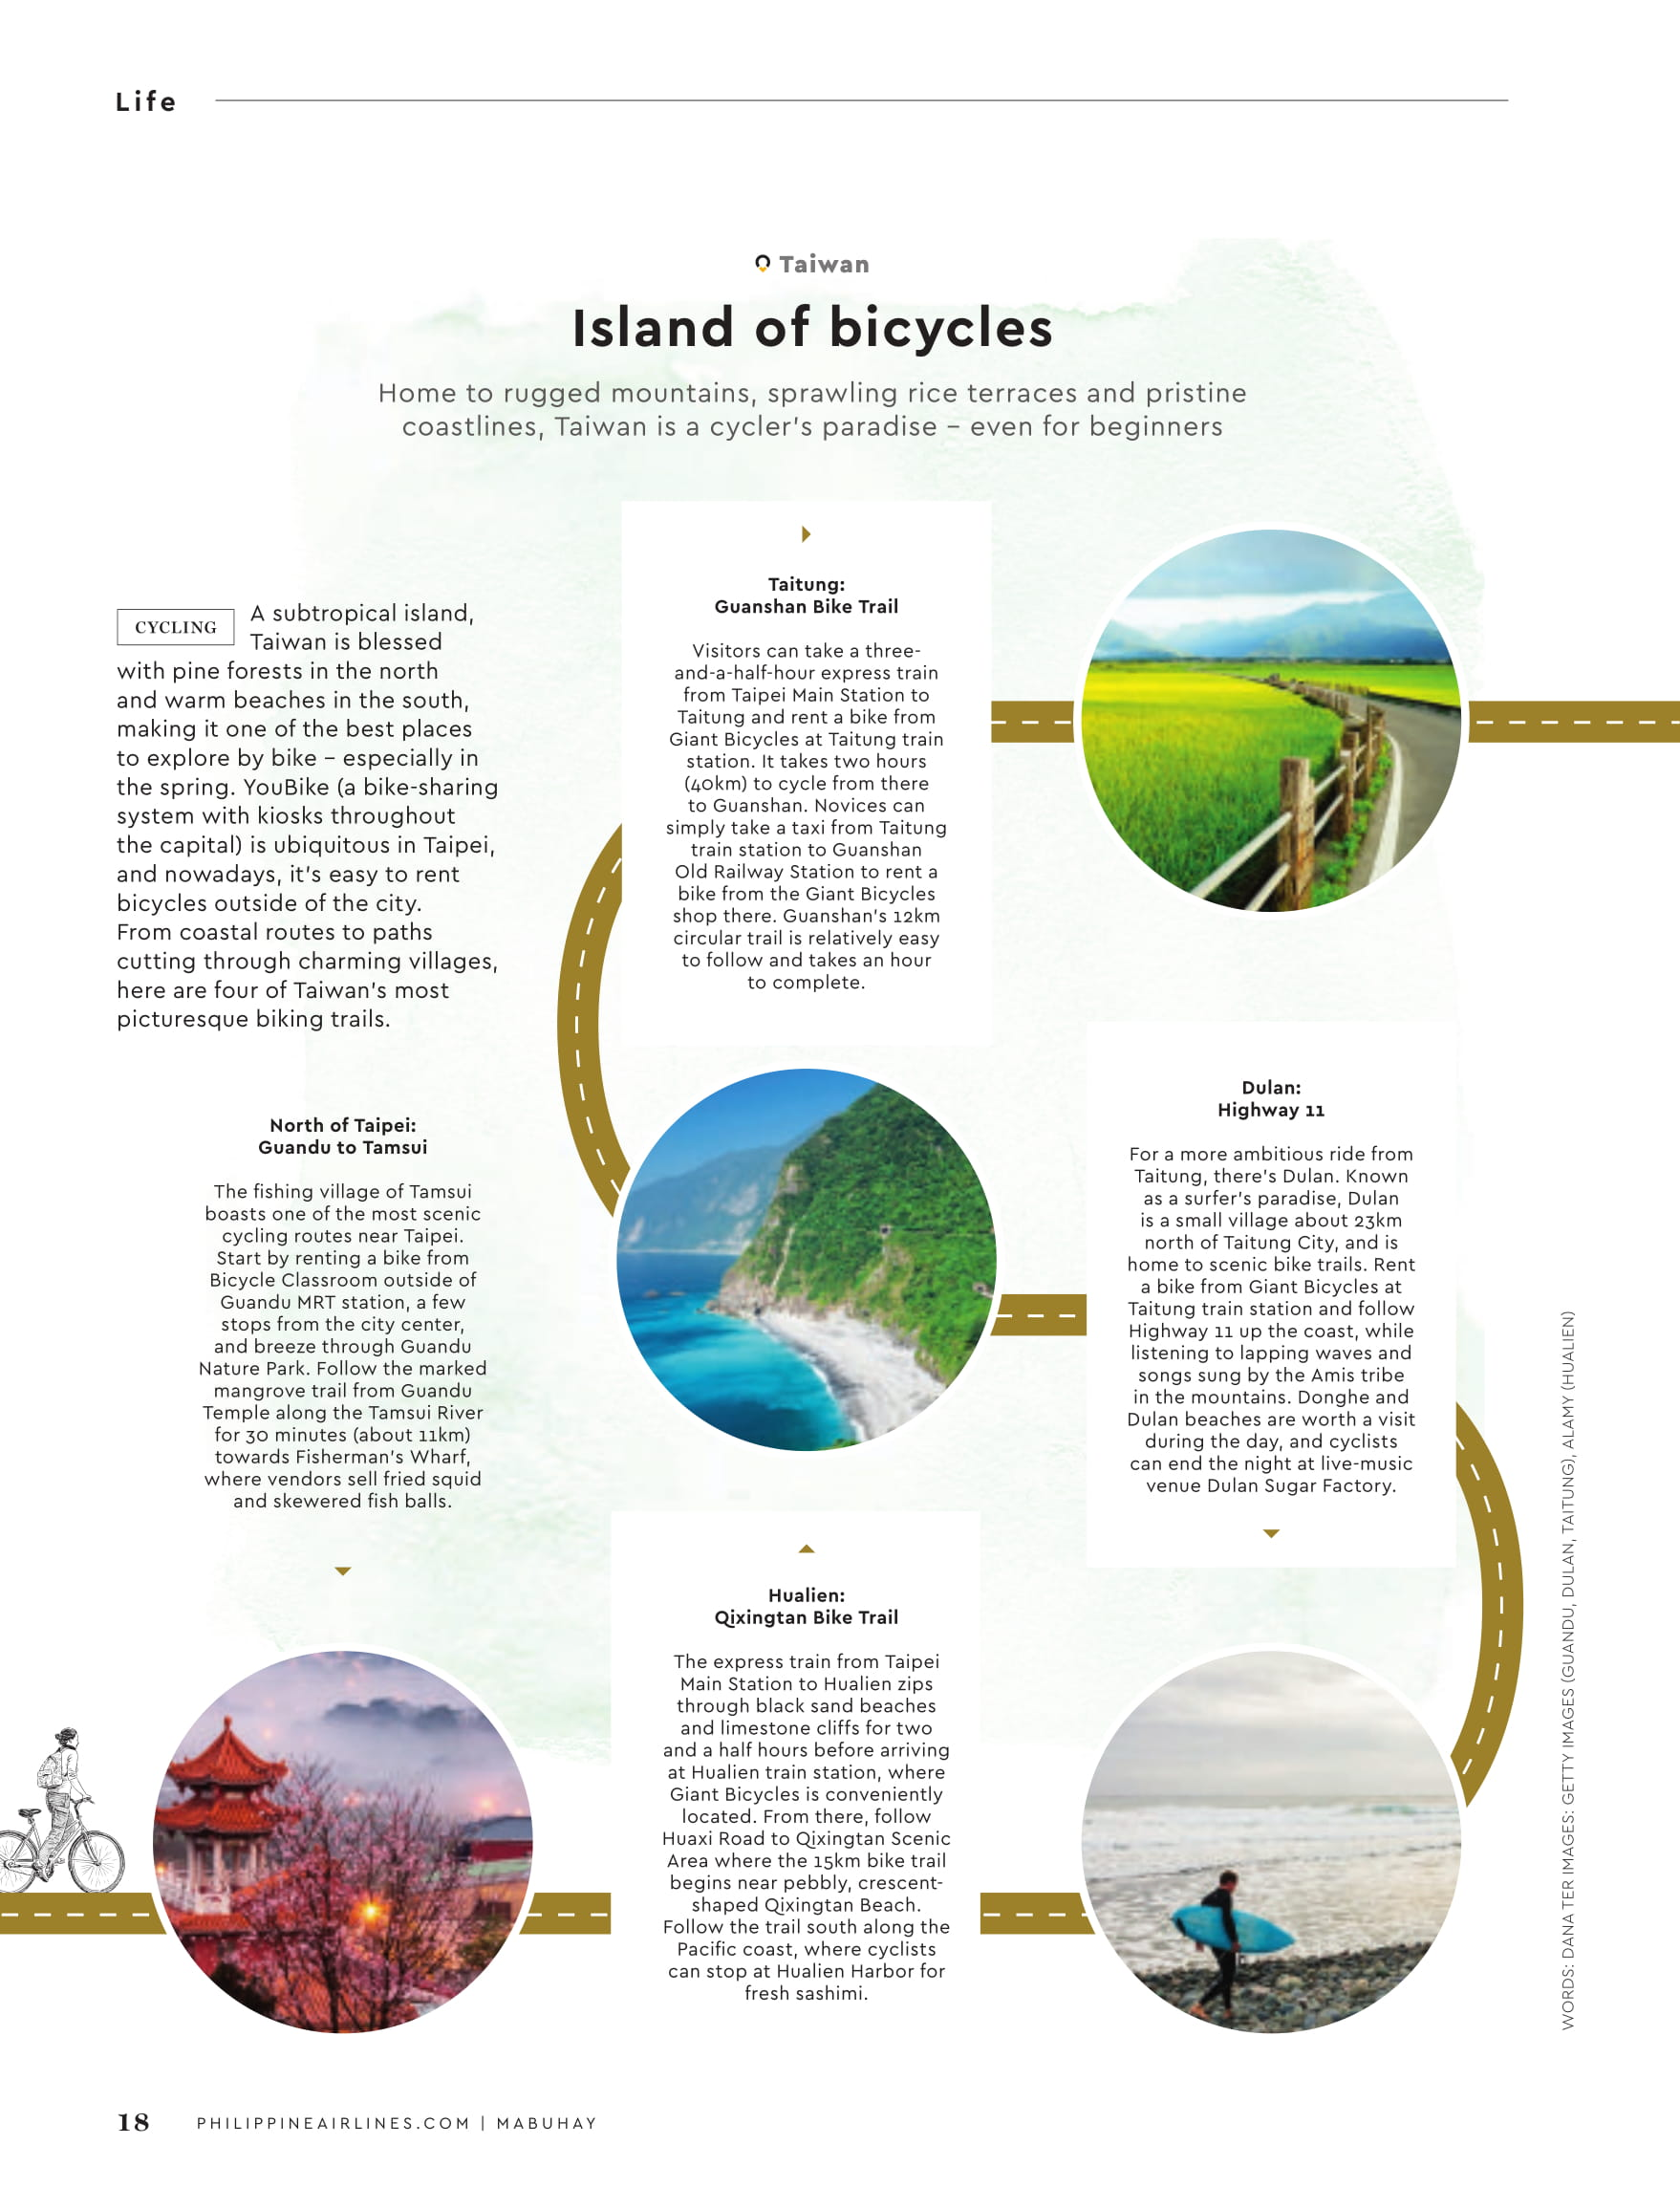 Island of bicycles p18 1